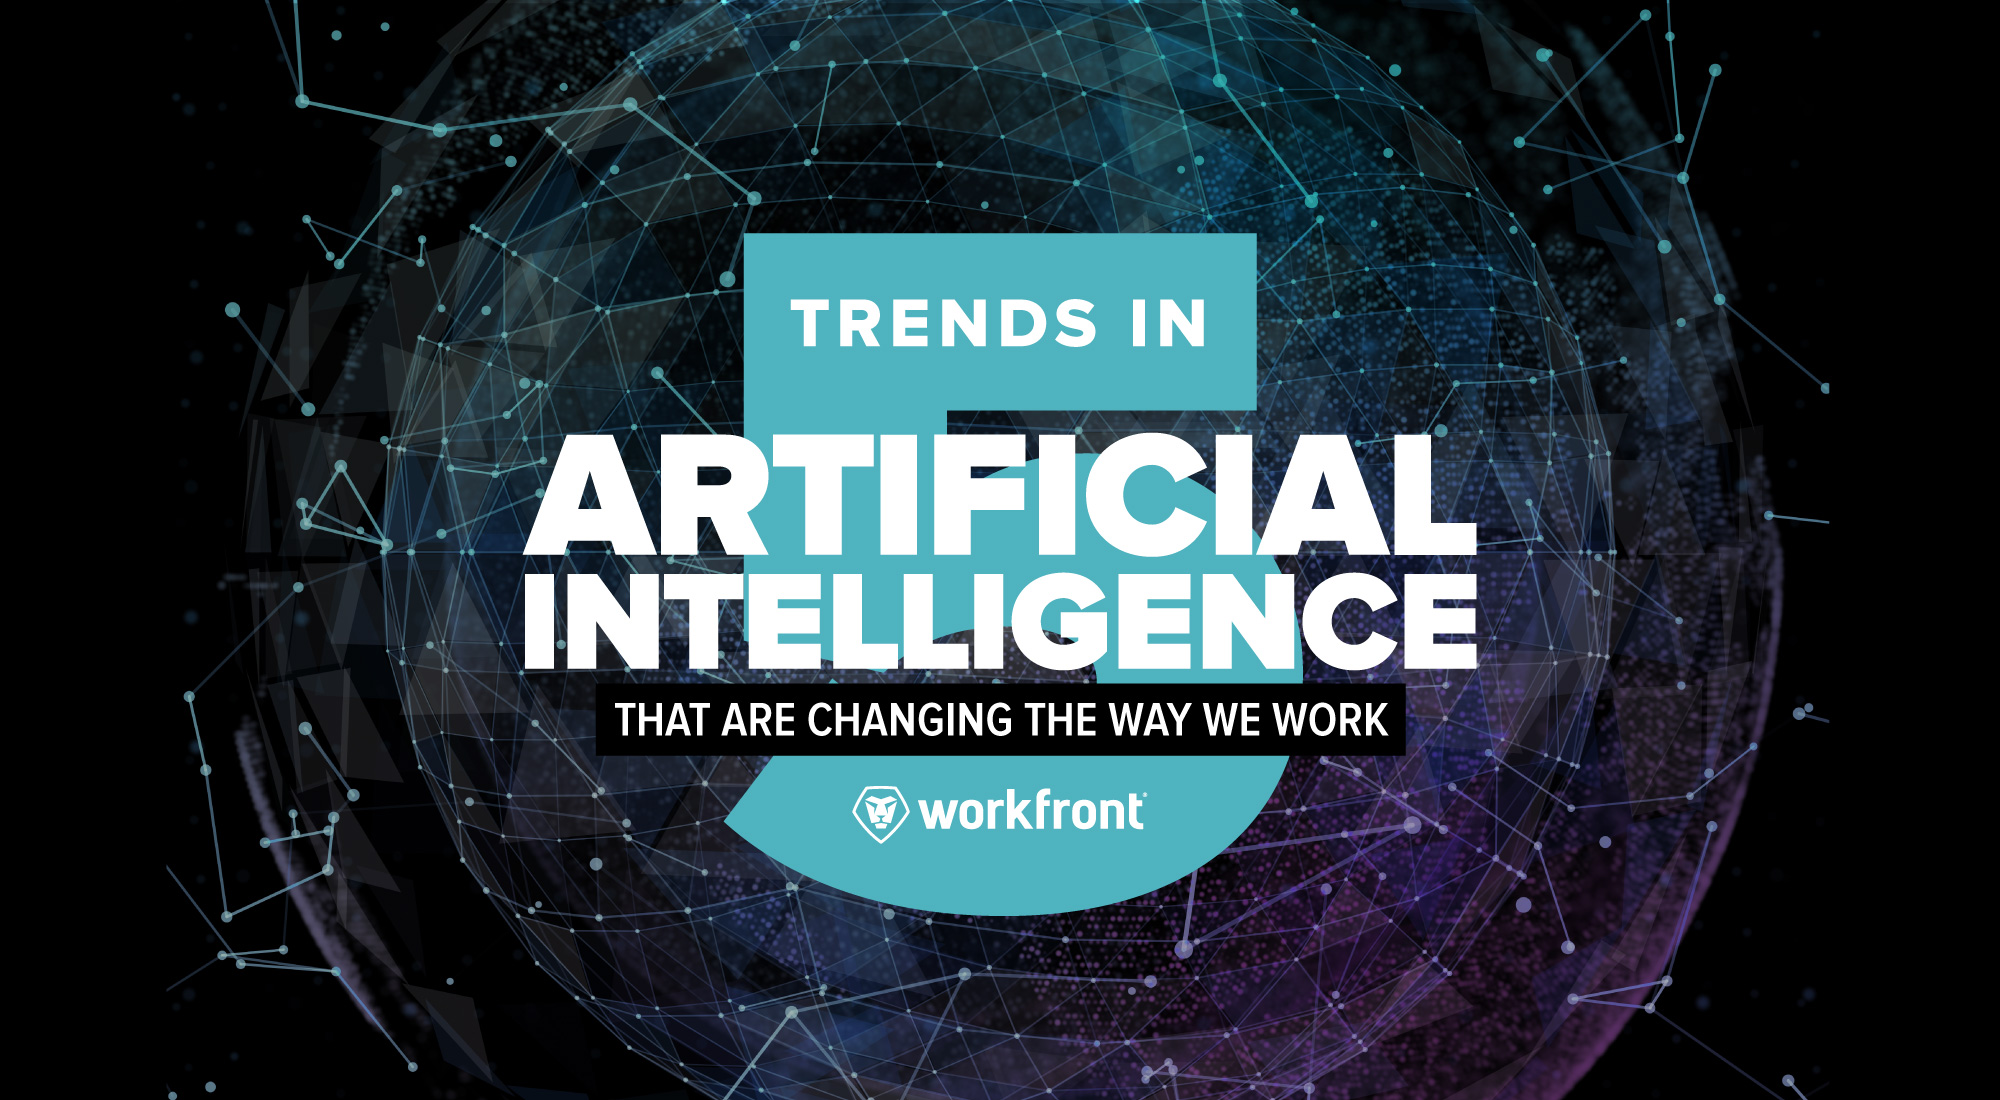 5 Trends in Artificial Intelligence that Are Changing the Way We Work